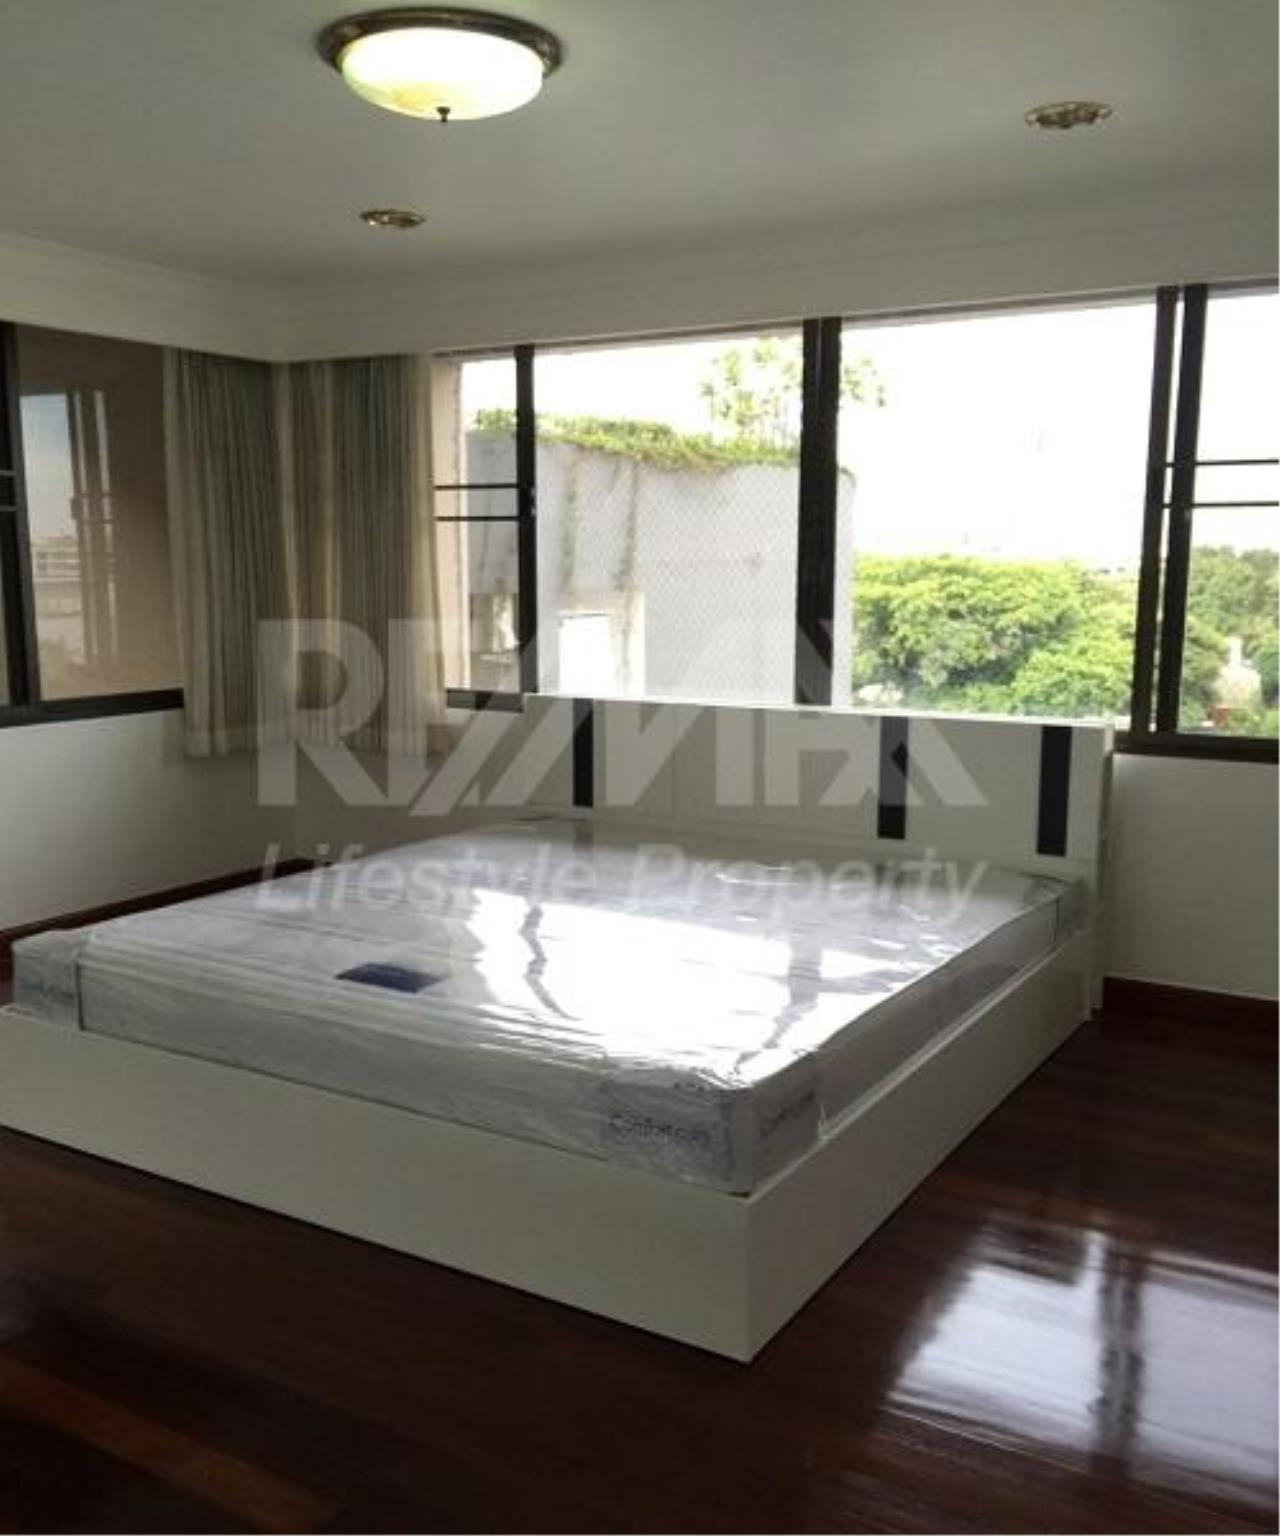 RE/MAX LifeStyle Property Agency's Acadamia Grand Tower 5